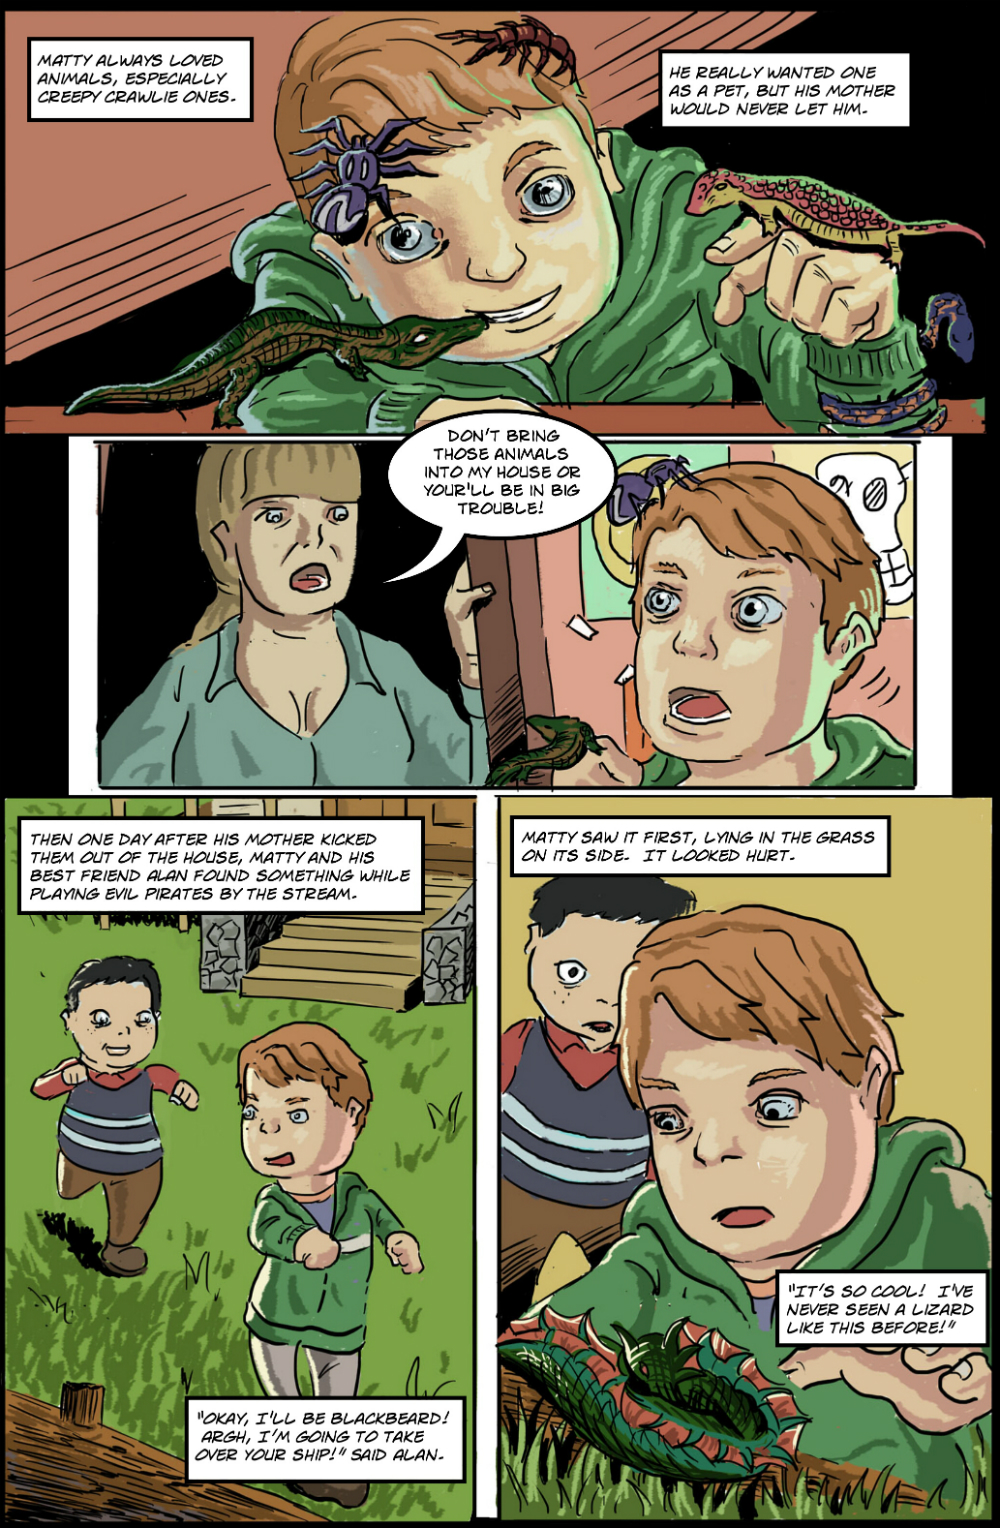 BASILISK IN THE HOUSE page 1 - story 18 in The Book of Lies